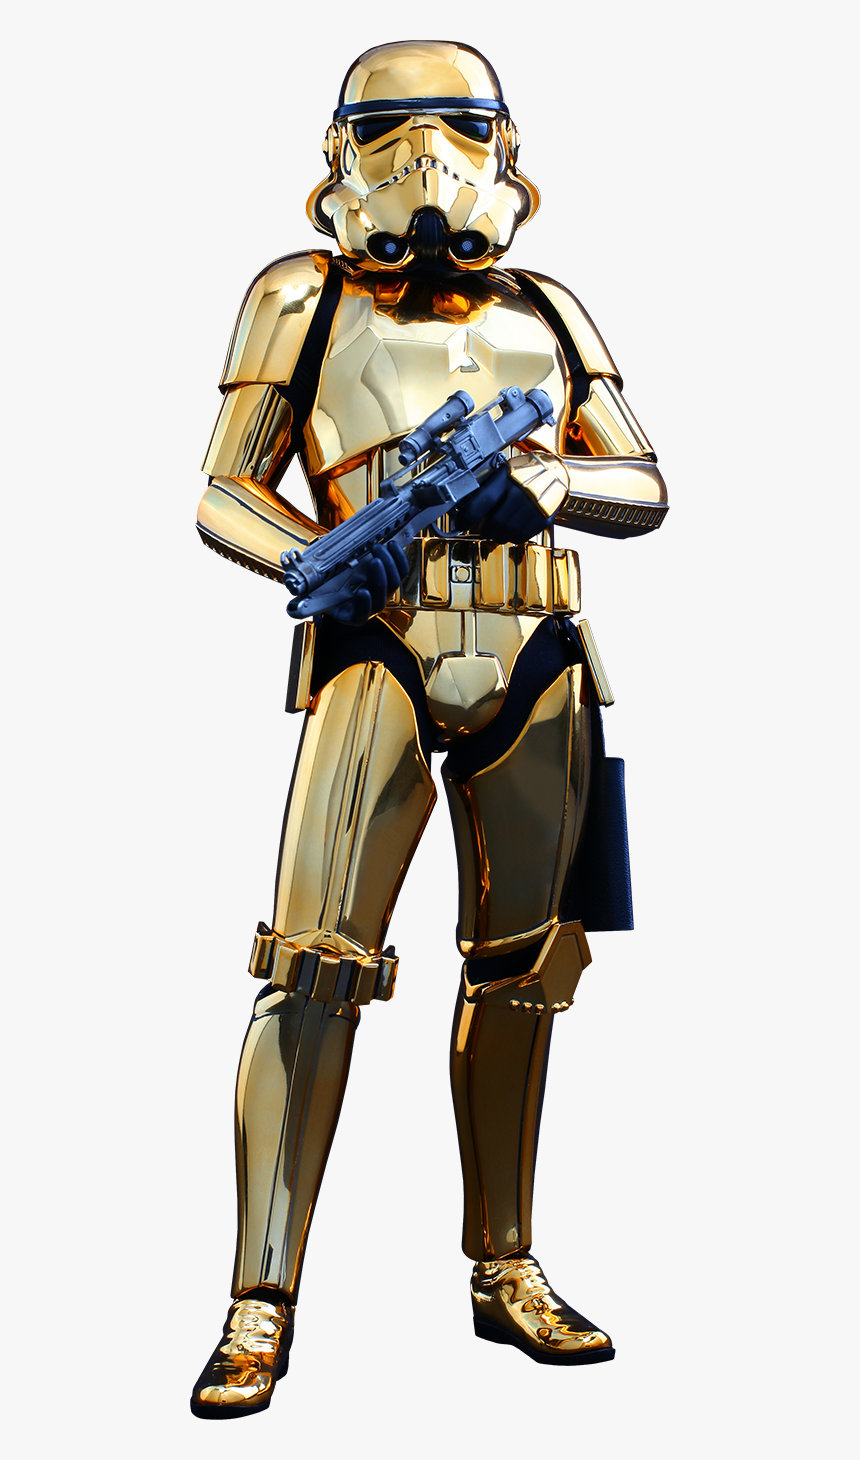 Hot Toys Stormtrooper Gold Chrome Version Sixth Scale - Star Wars Gold Stormtrooper, HD Png Download, Free Download